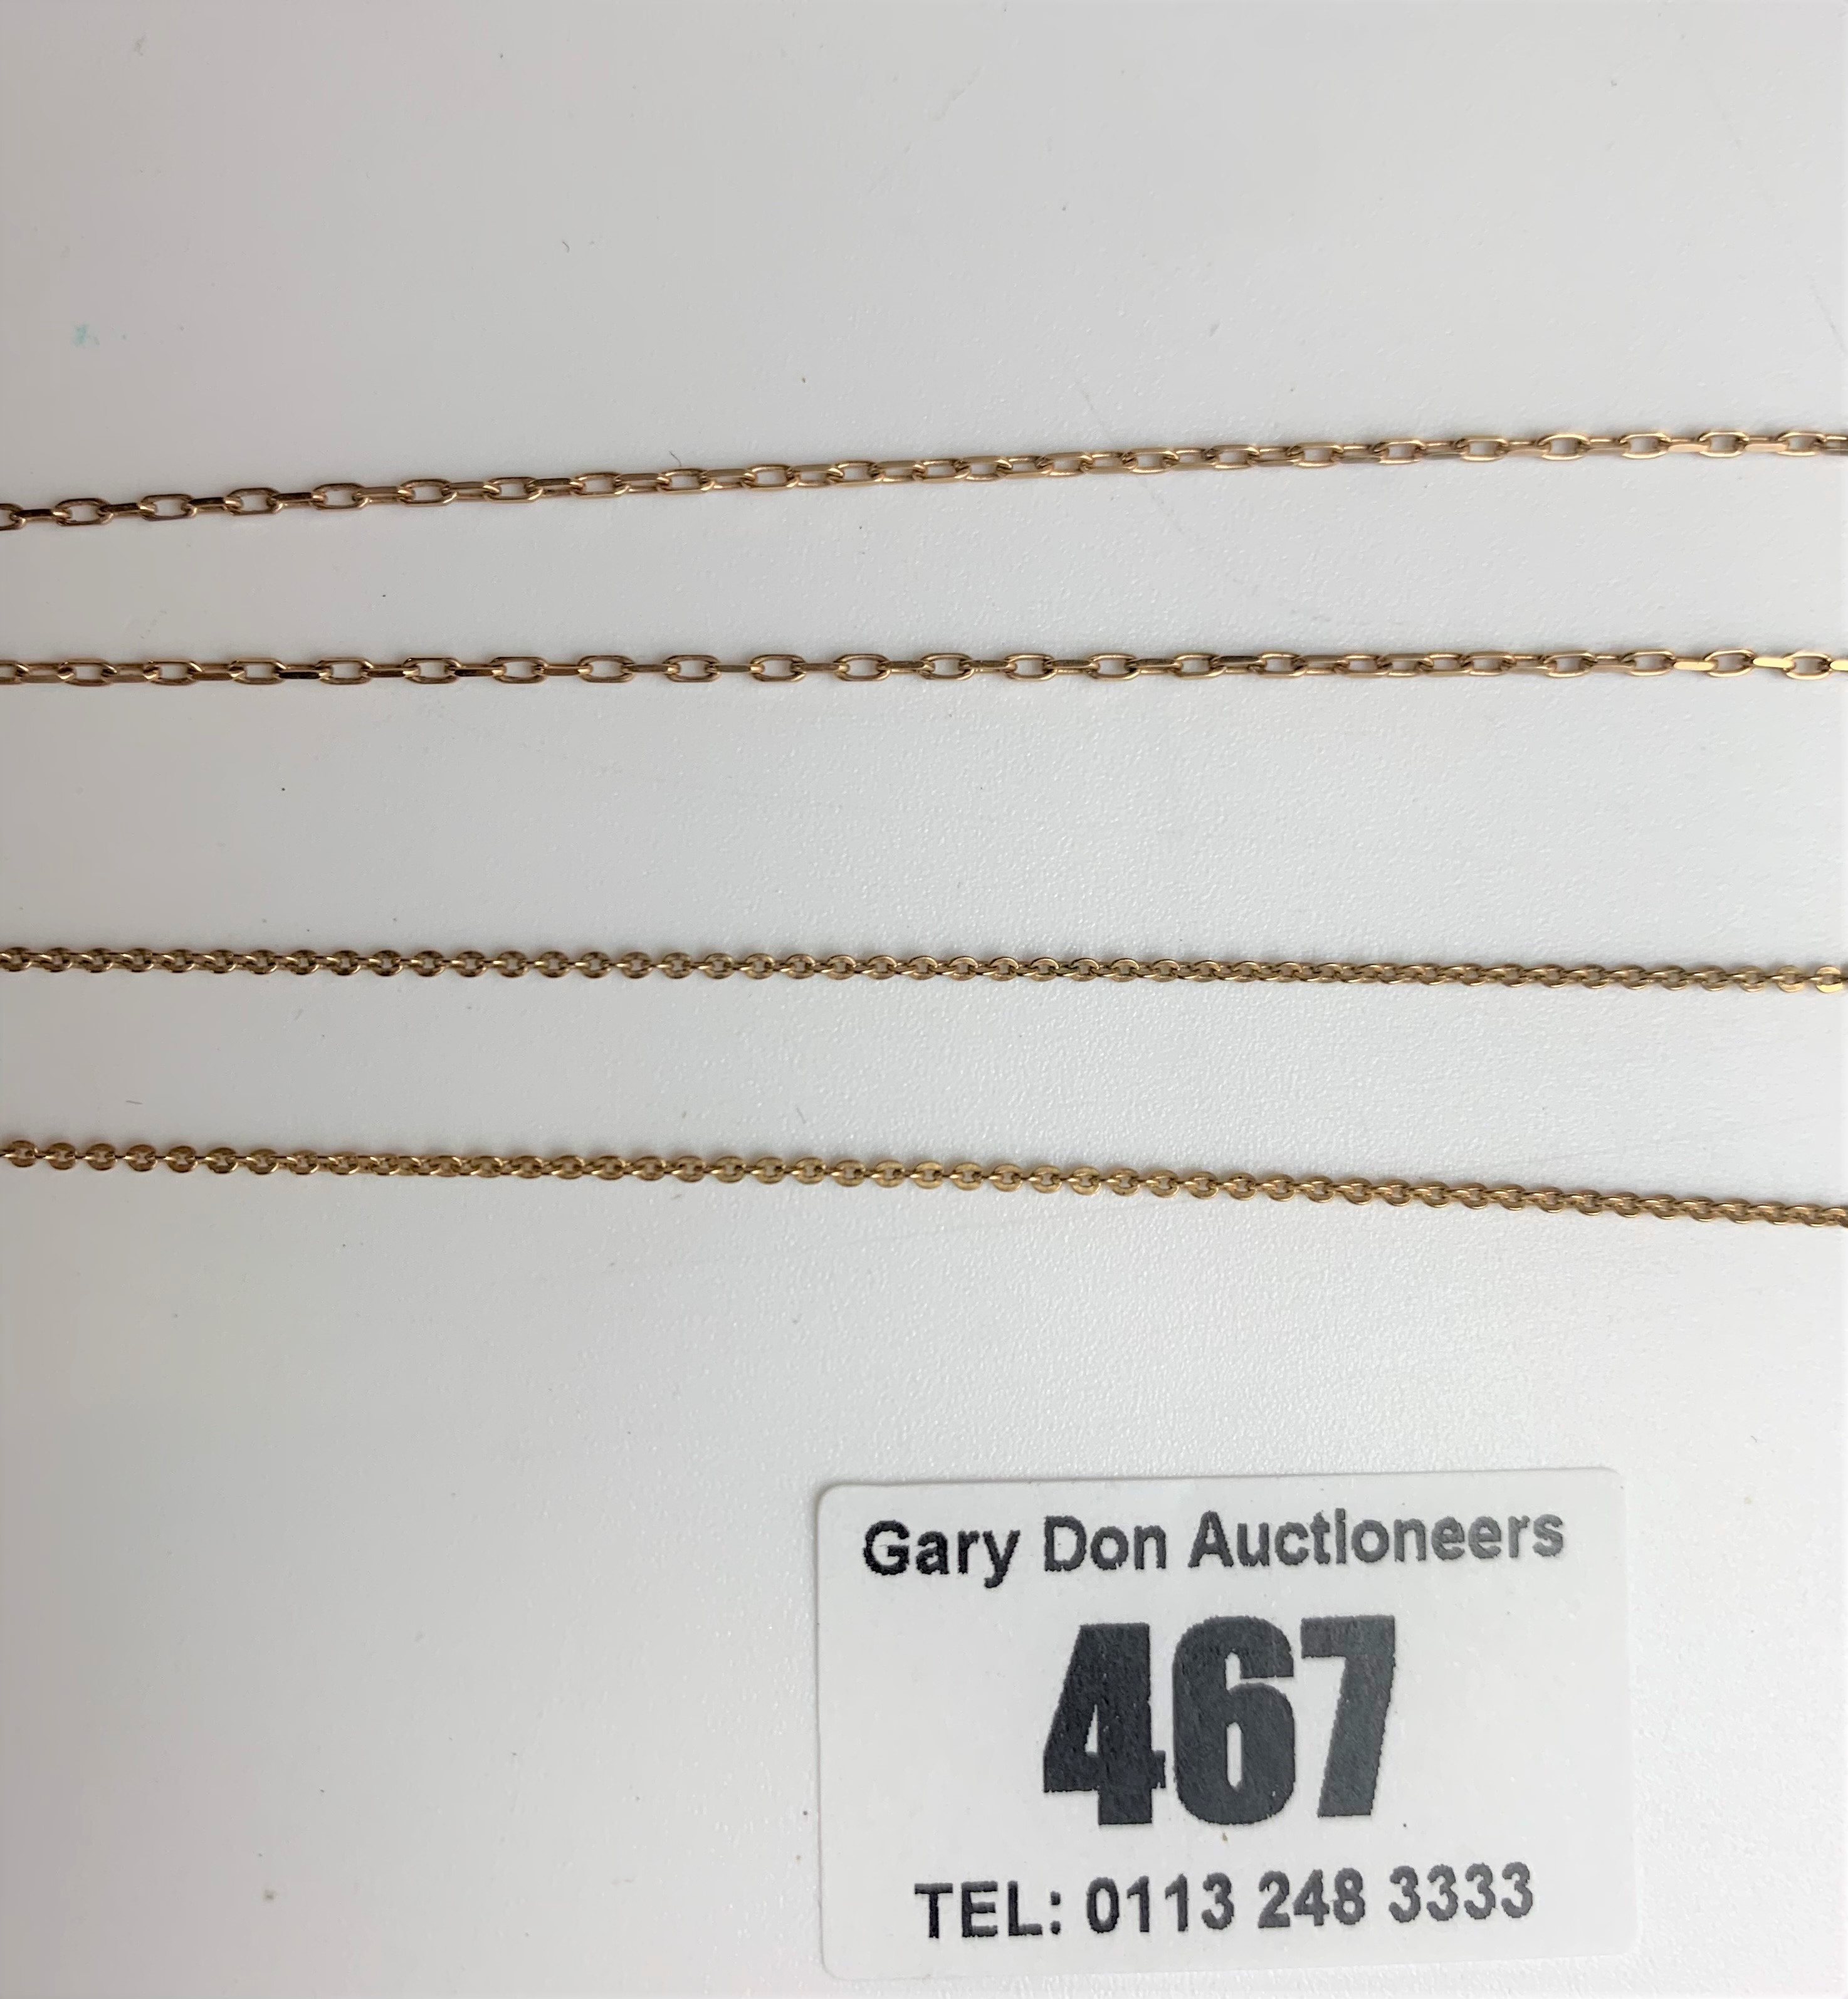 """9k gold necklace with heart locket, length 16"""" plus 1"""" locket, and 9k gold necklace, 15"""" length. - Image 5 of 5"""